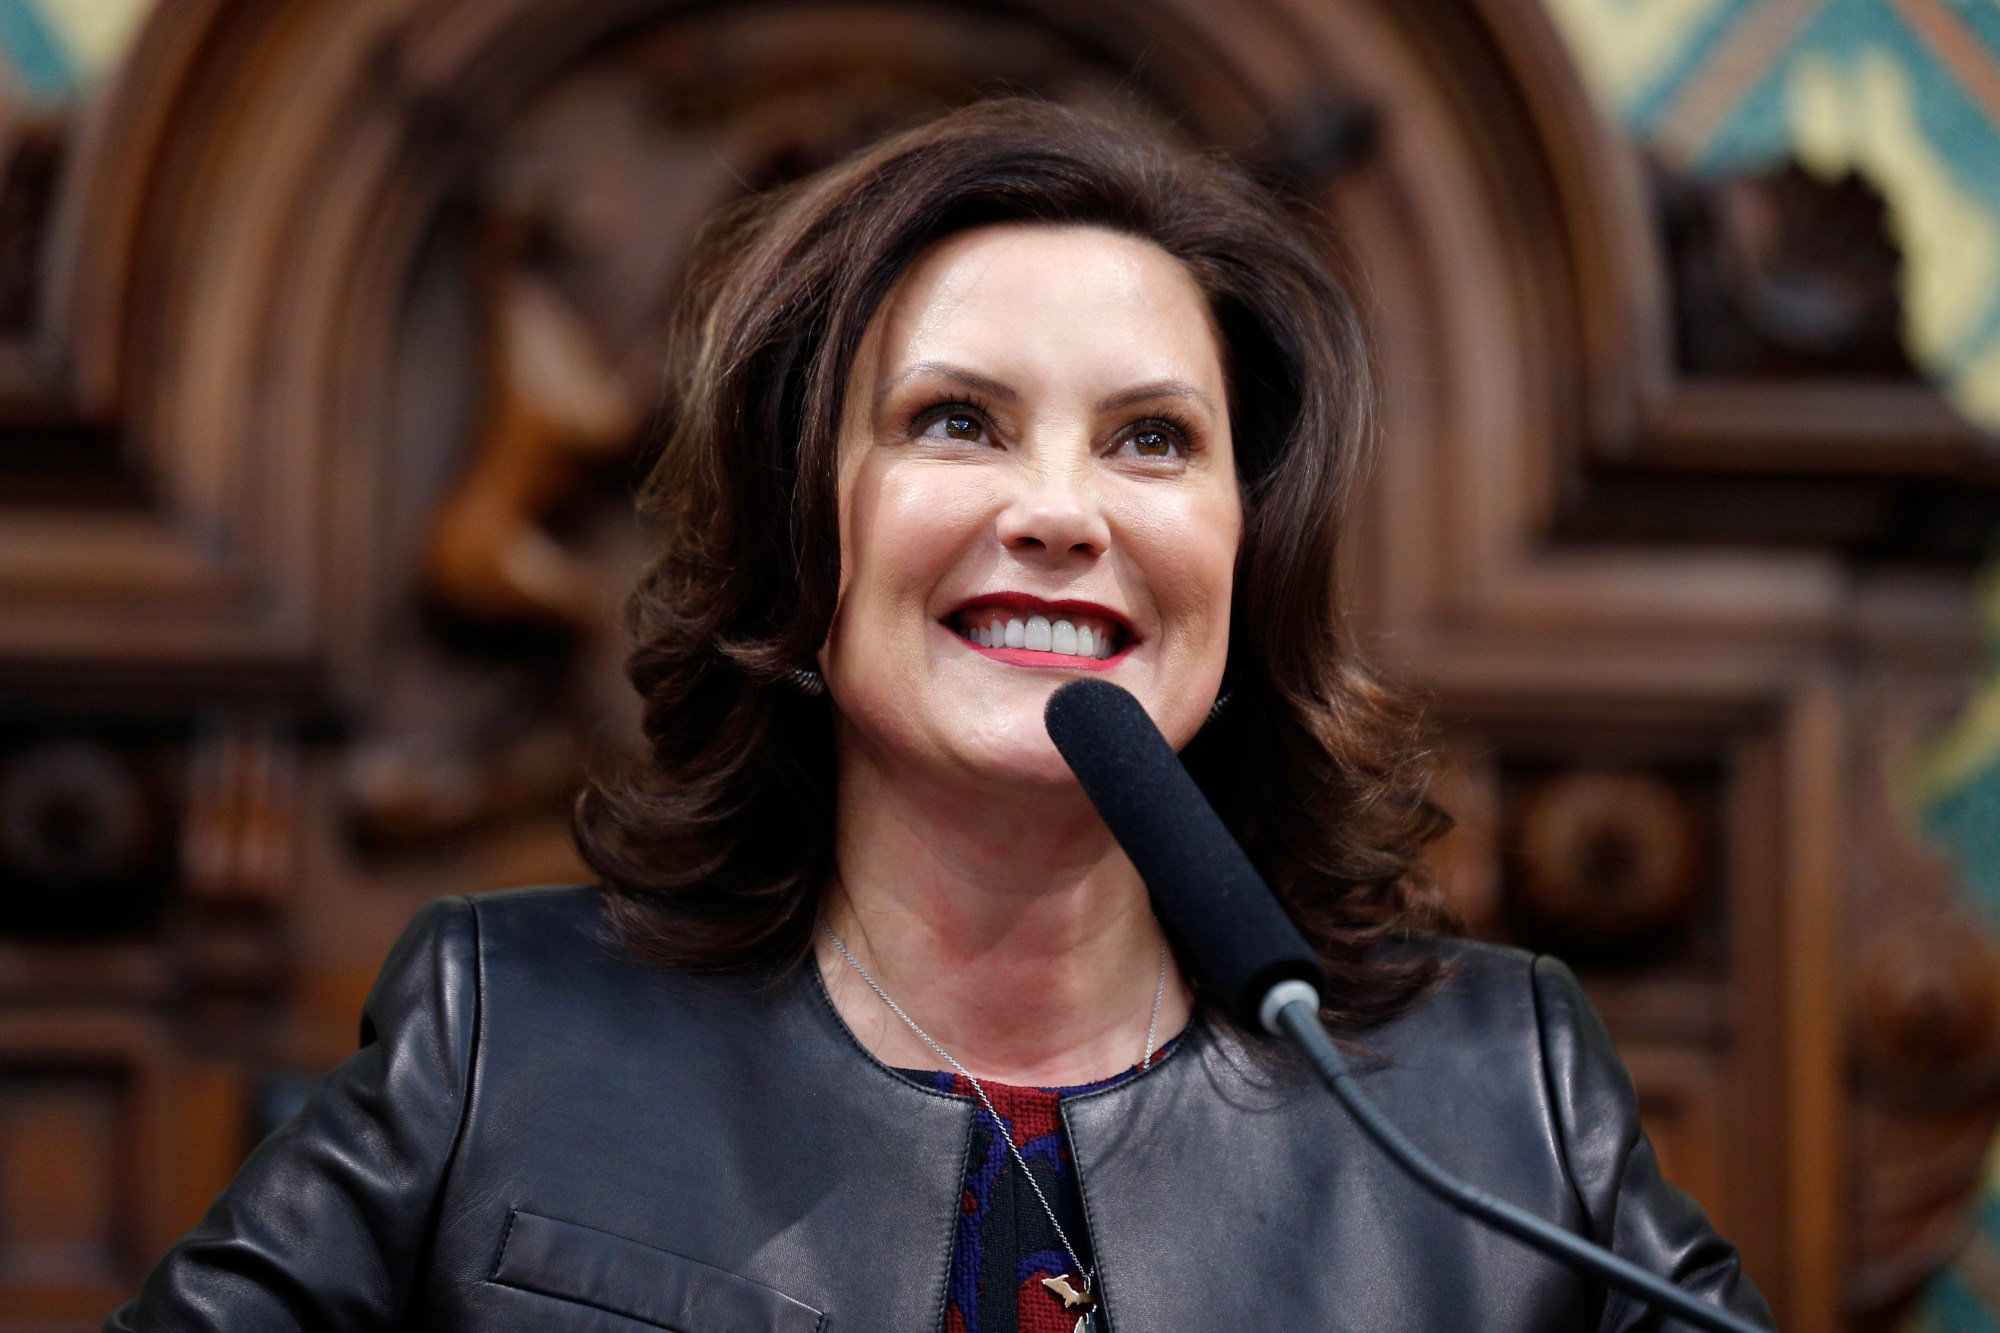 Michigan Gov. Gretchen Whitmer delivers her State of the State address at the state Capitol in Lansing, Michigan on Jan. 29, 2020. (AP Photo/Al Goldis, File)